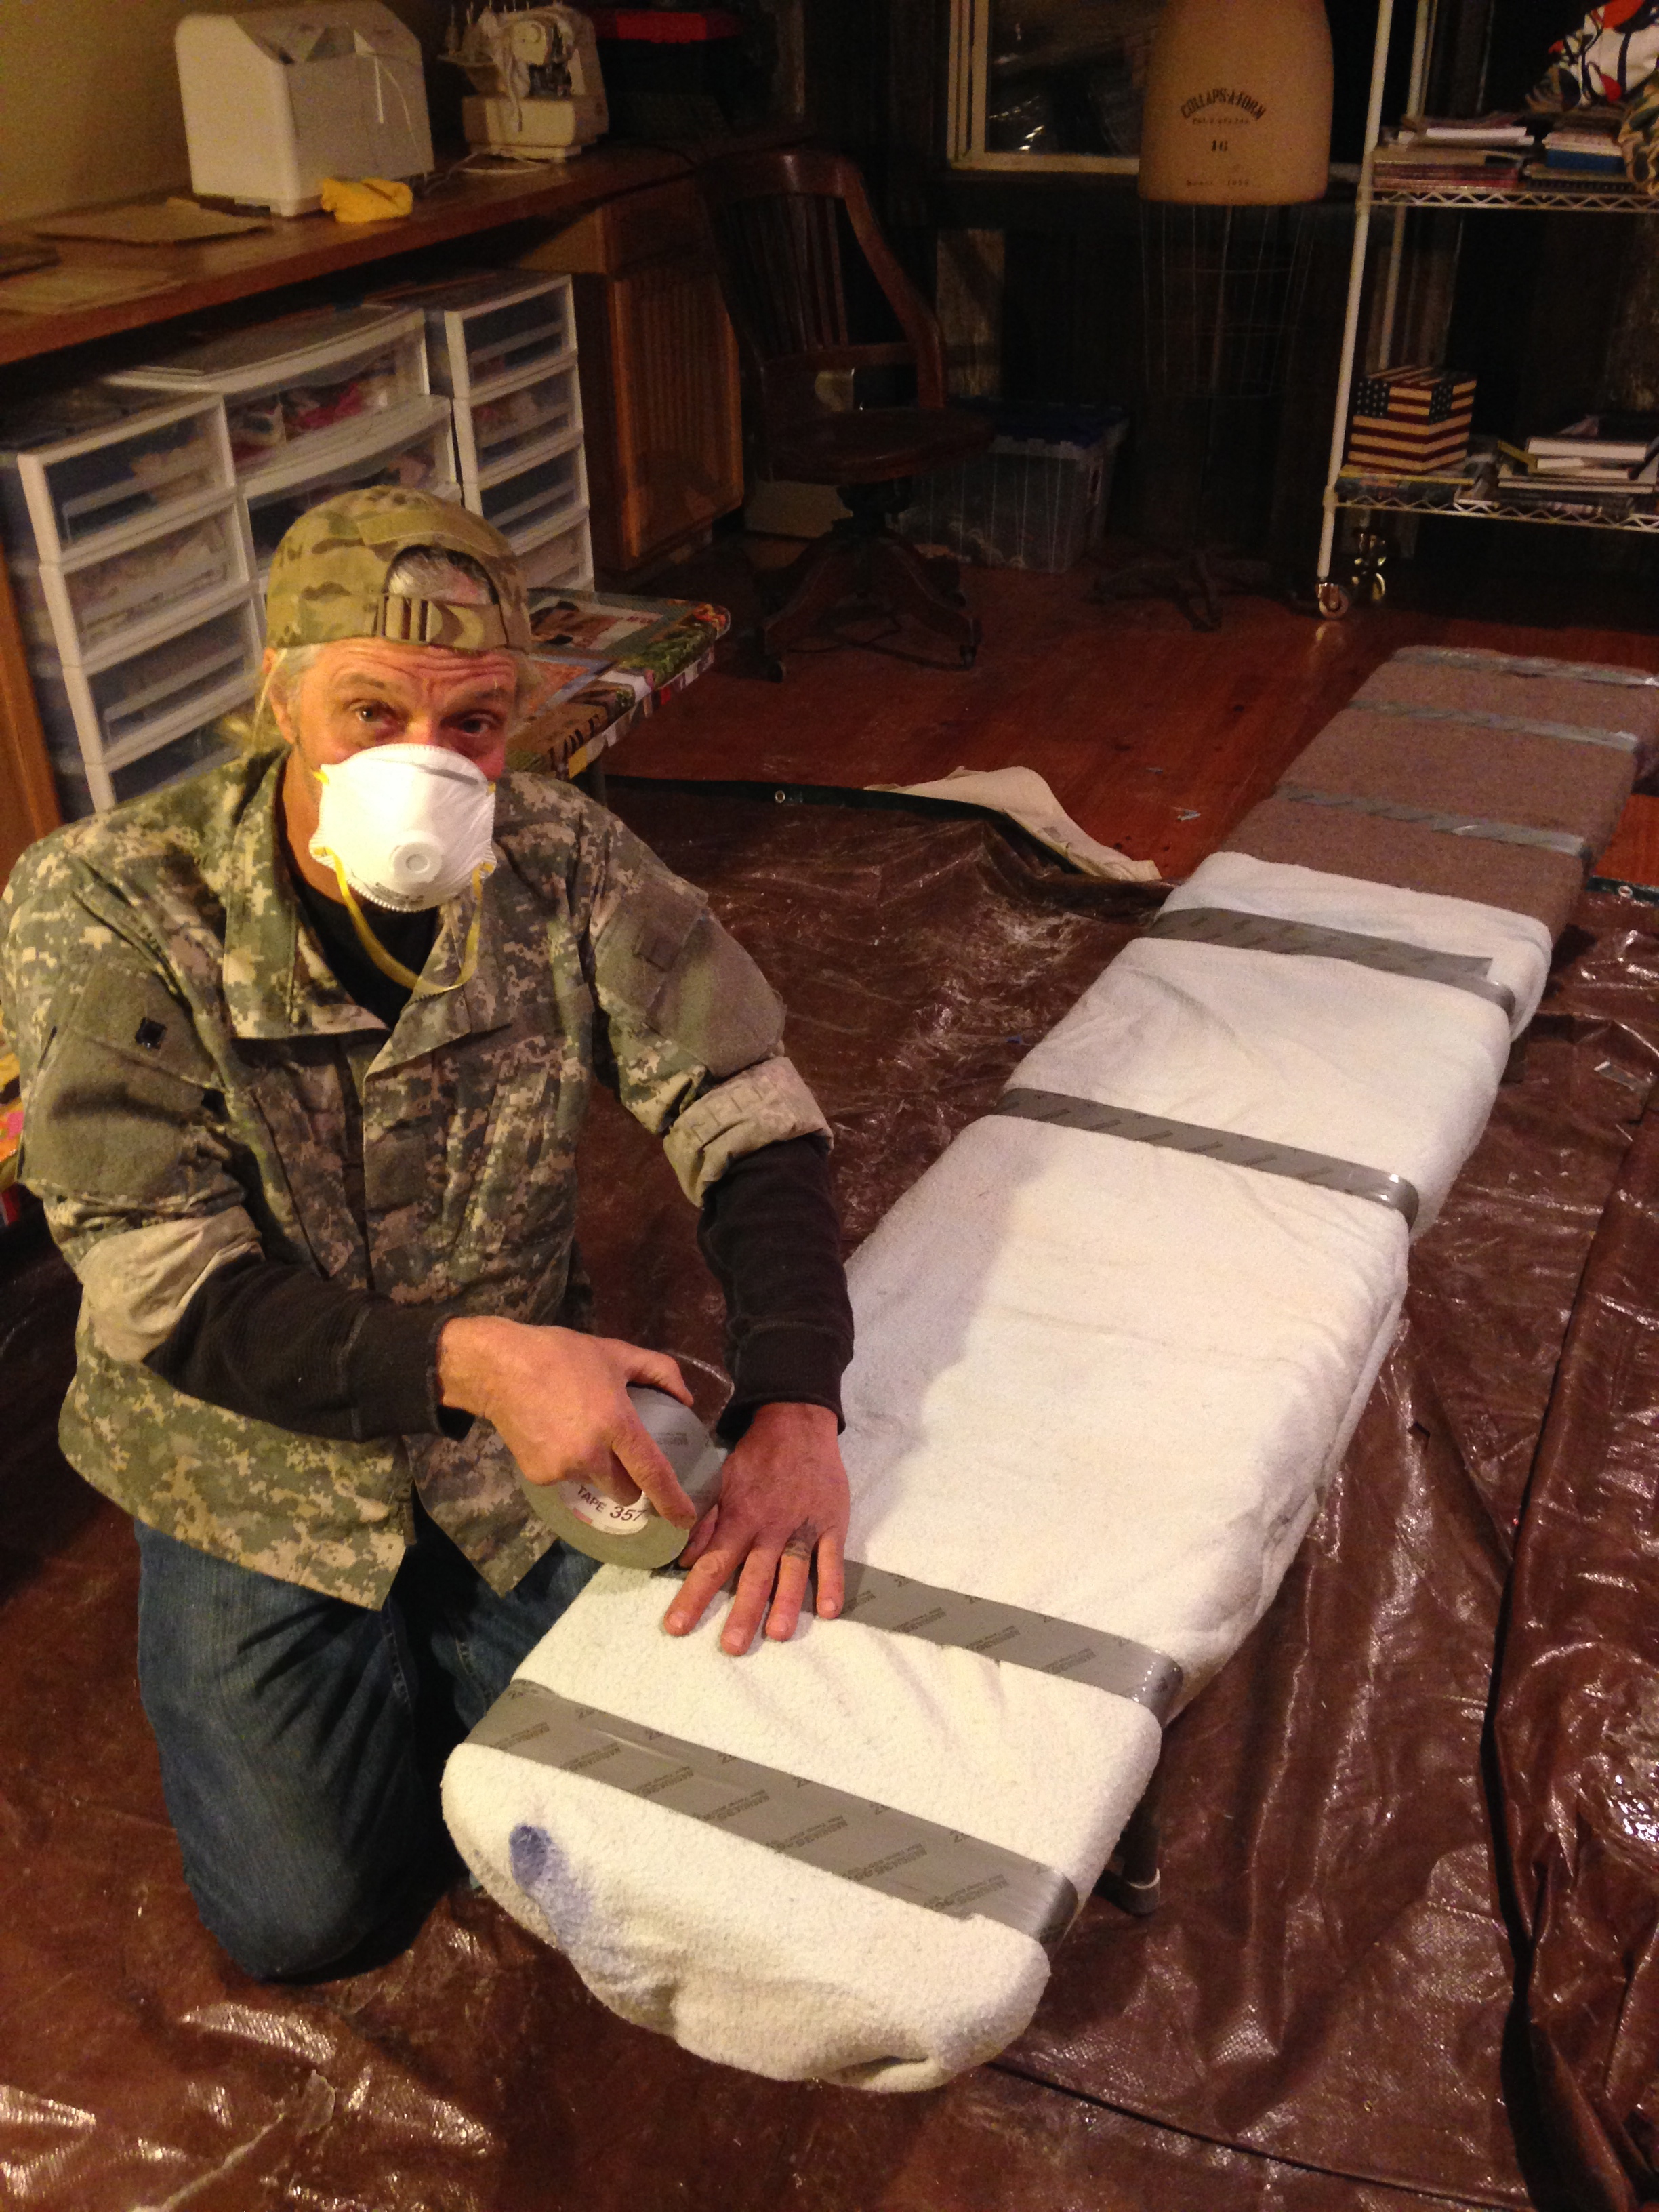 After sanding, Richard helps with packing the benches for transport to the MRF.